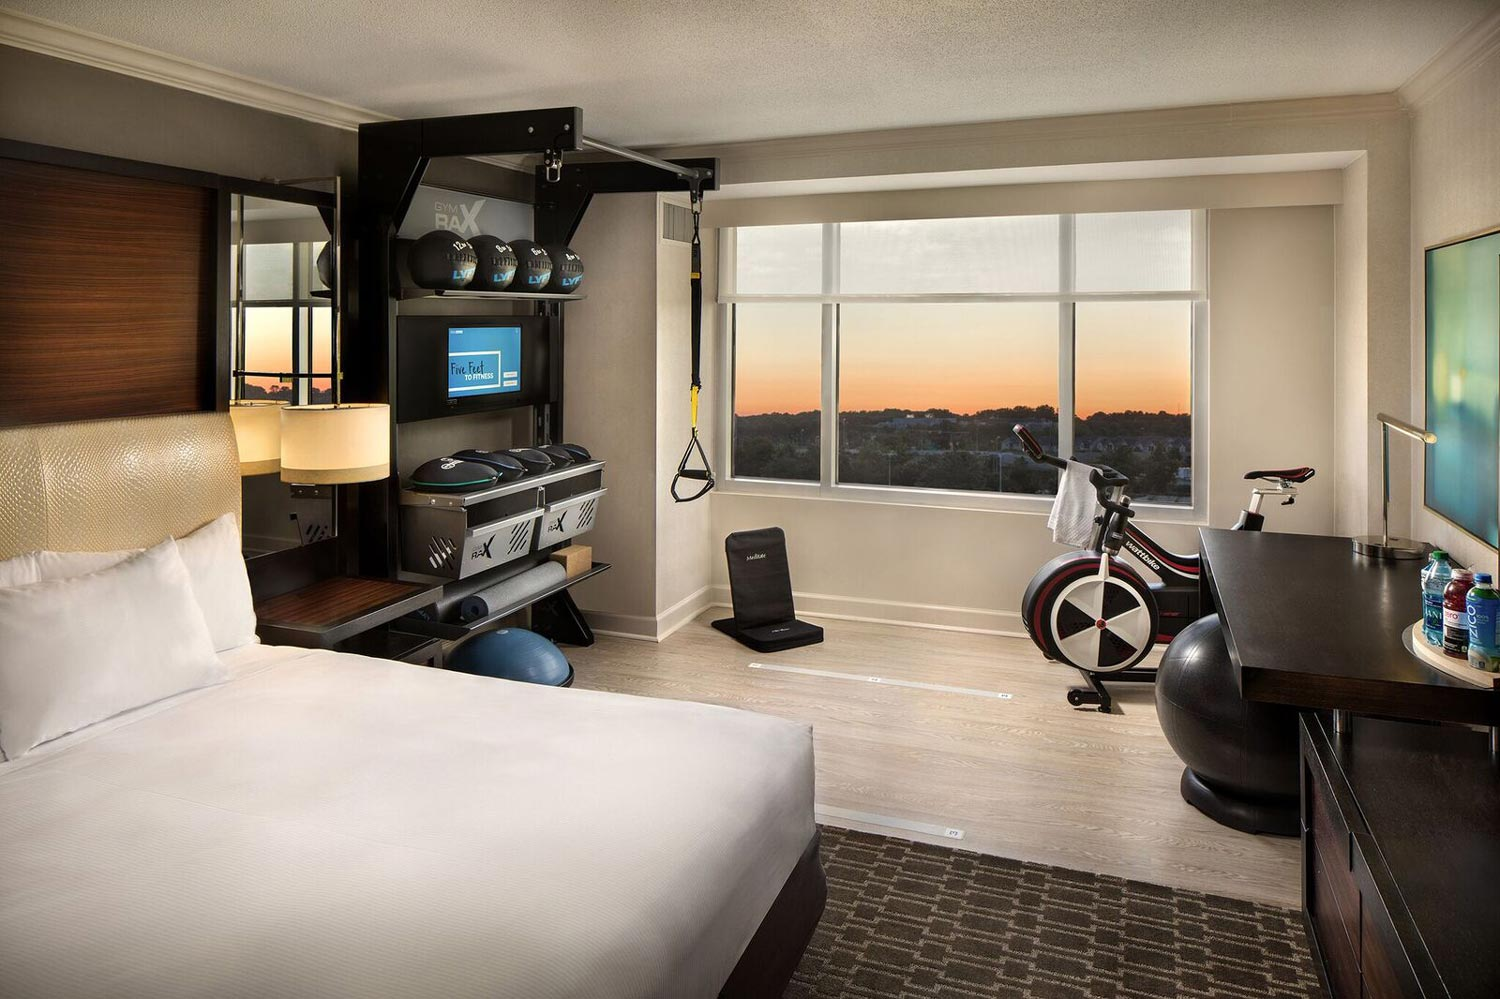 """Hilton's """"Five Feet to Fitness"""" concept brings workout equipment to rooms in a bid to capture health-inclined travelers. (Photo courtesy of Hilton)"""